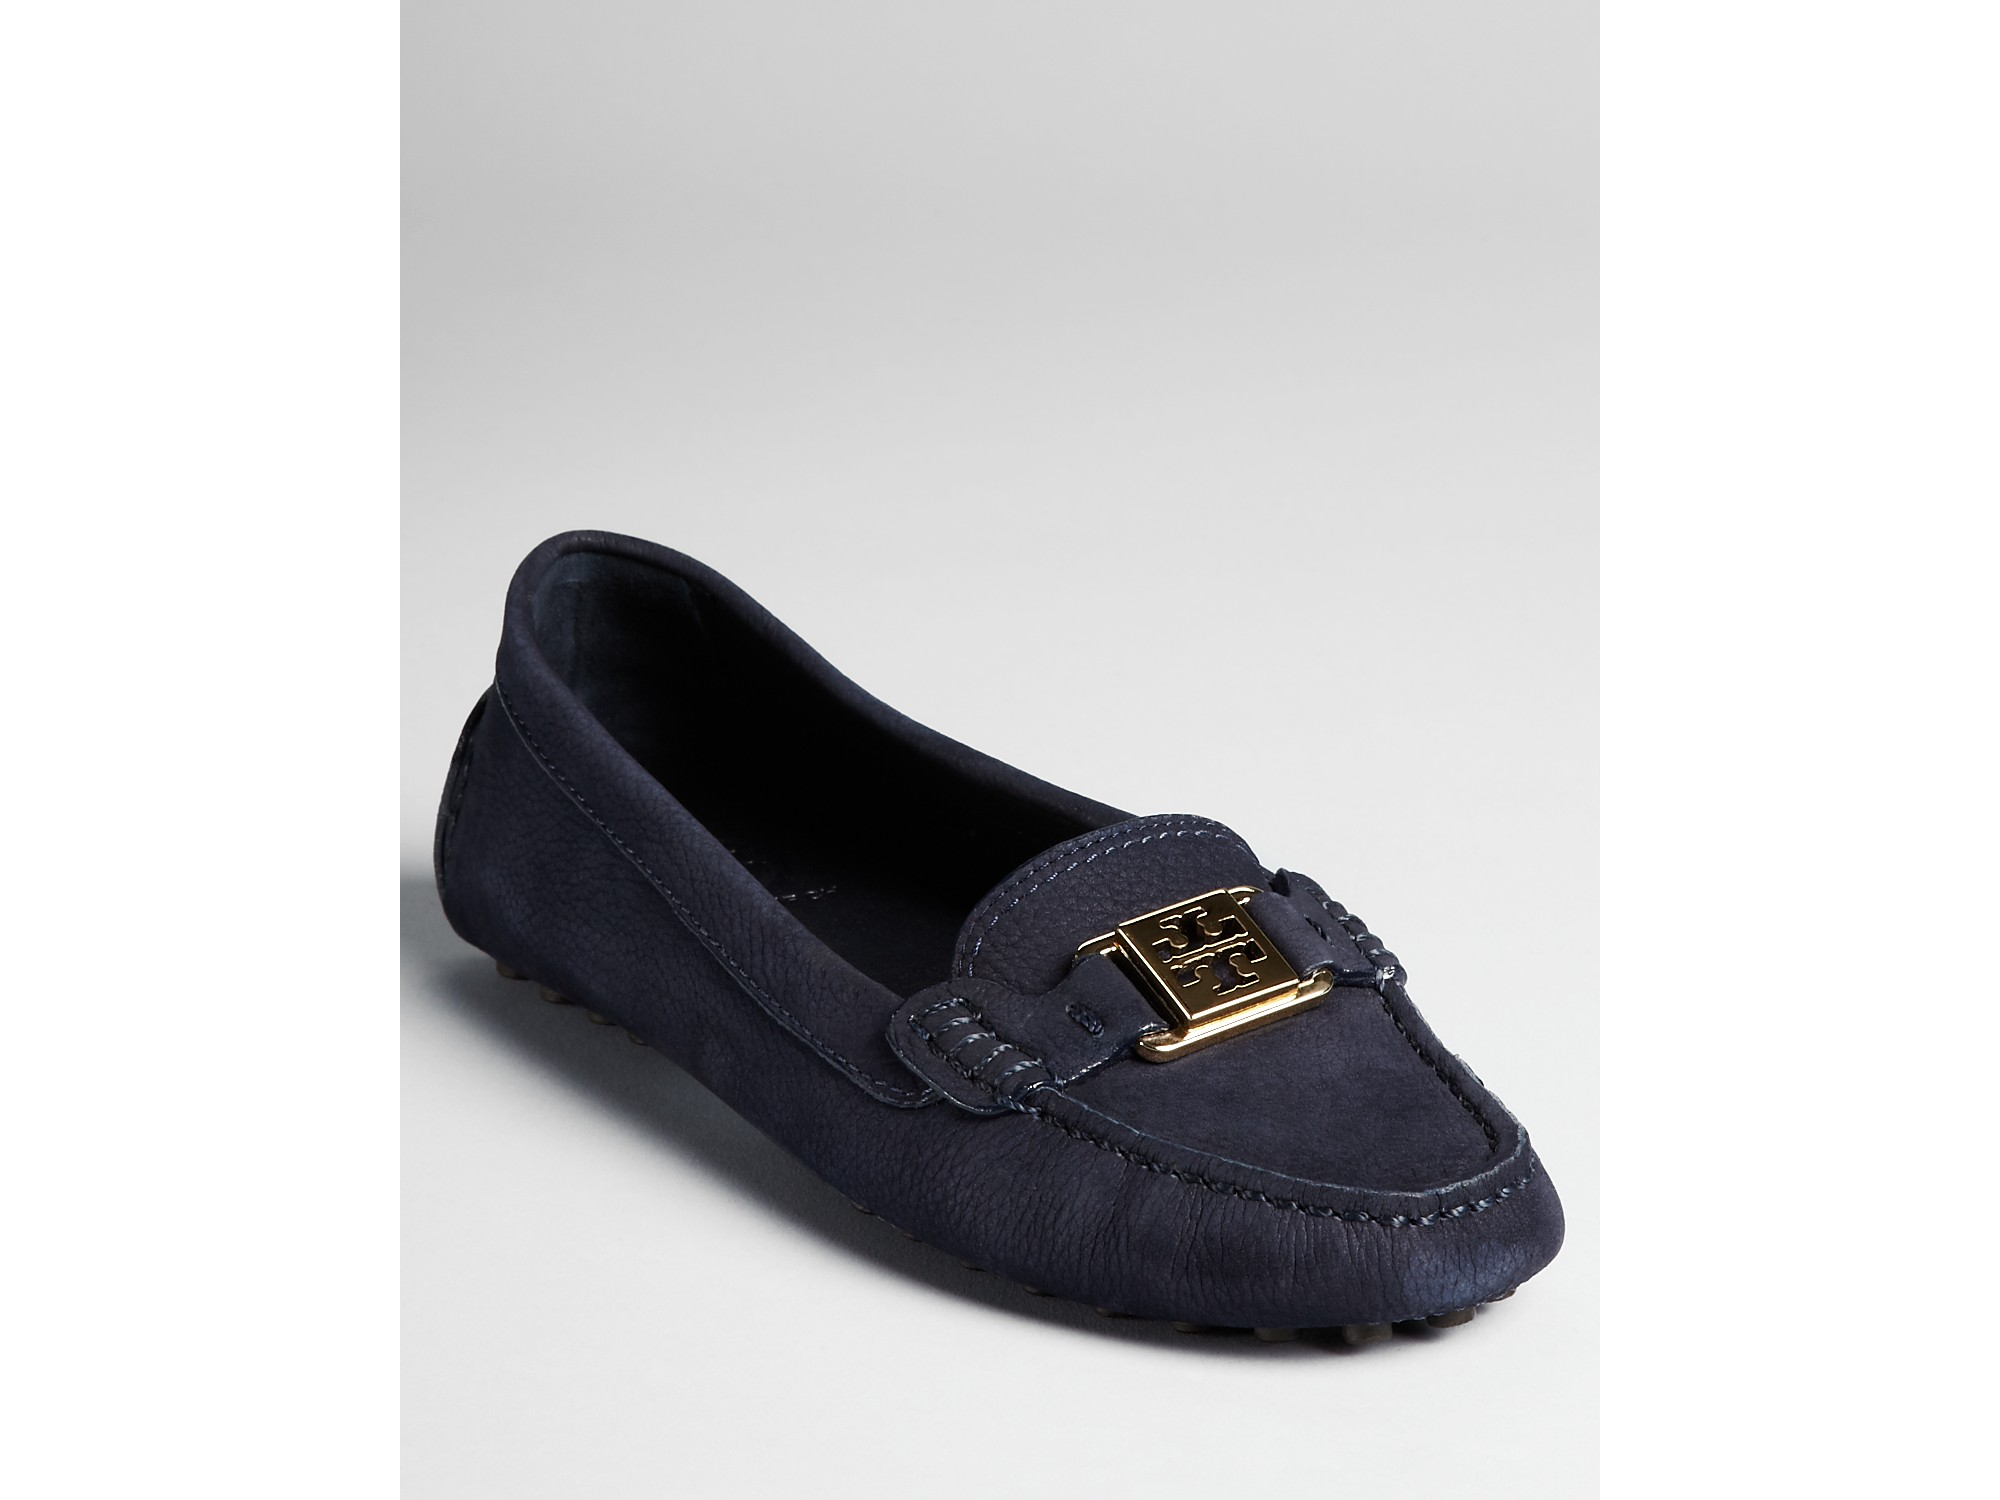 Lyst - Tory Burch Loafers Kendrick Driving Moc in Blue 4d59292ac519